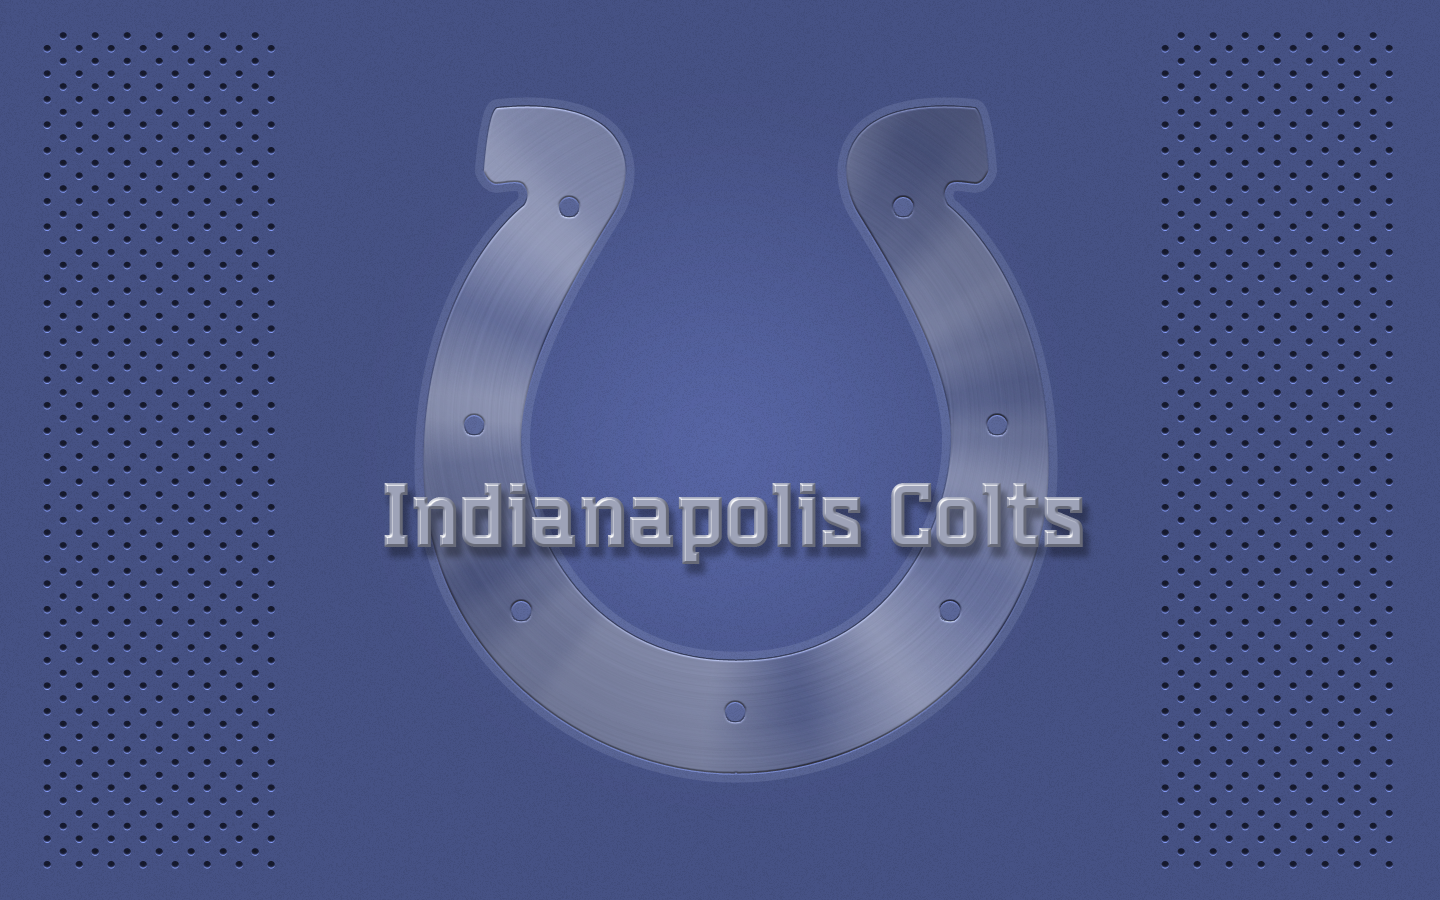 Indianapolis Colts Wallpaper: Indianapolis Colts brushed .